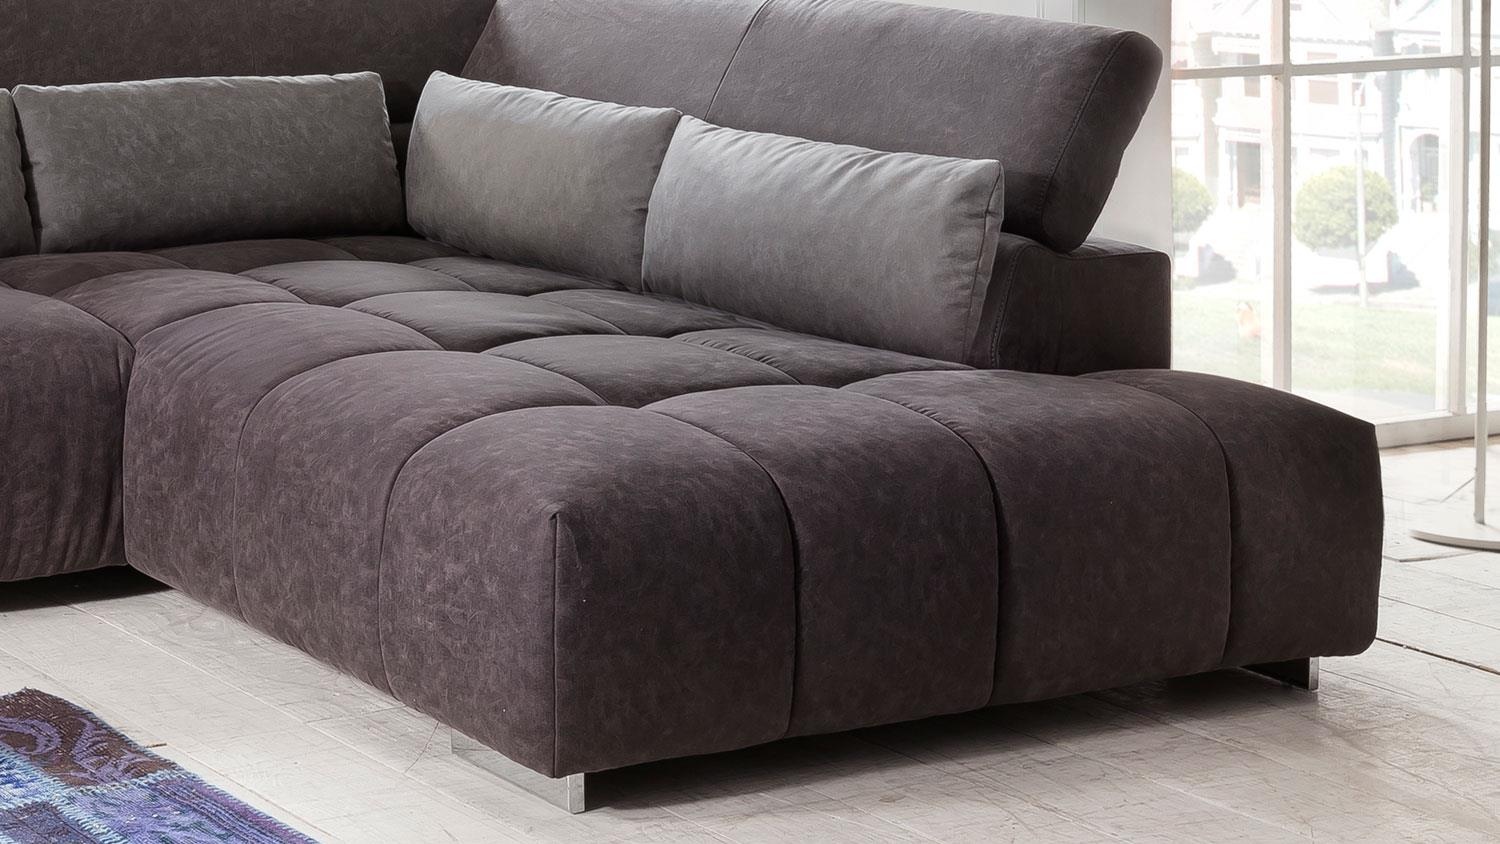 ecksofa aksis wohnlandschaft sofa polstersofa in braun. Black Bedroom Furniture Sets. Home Design Ideas